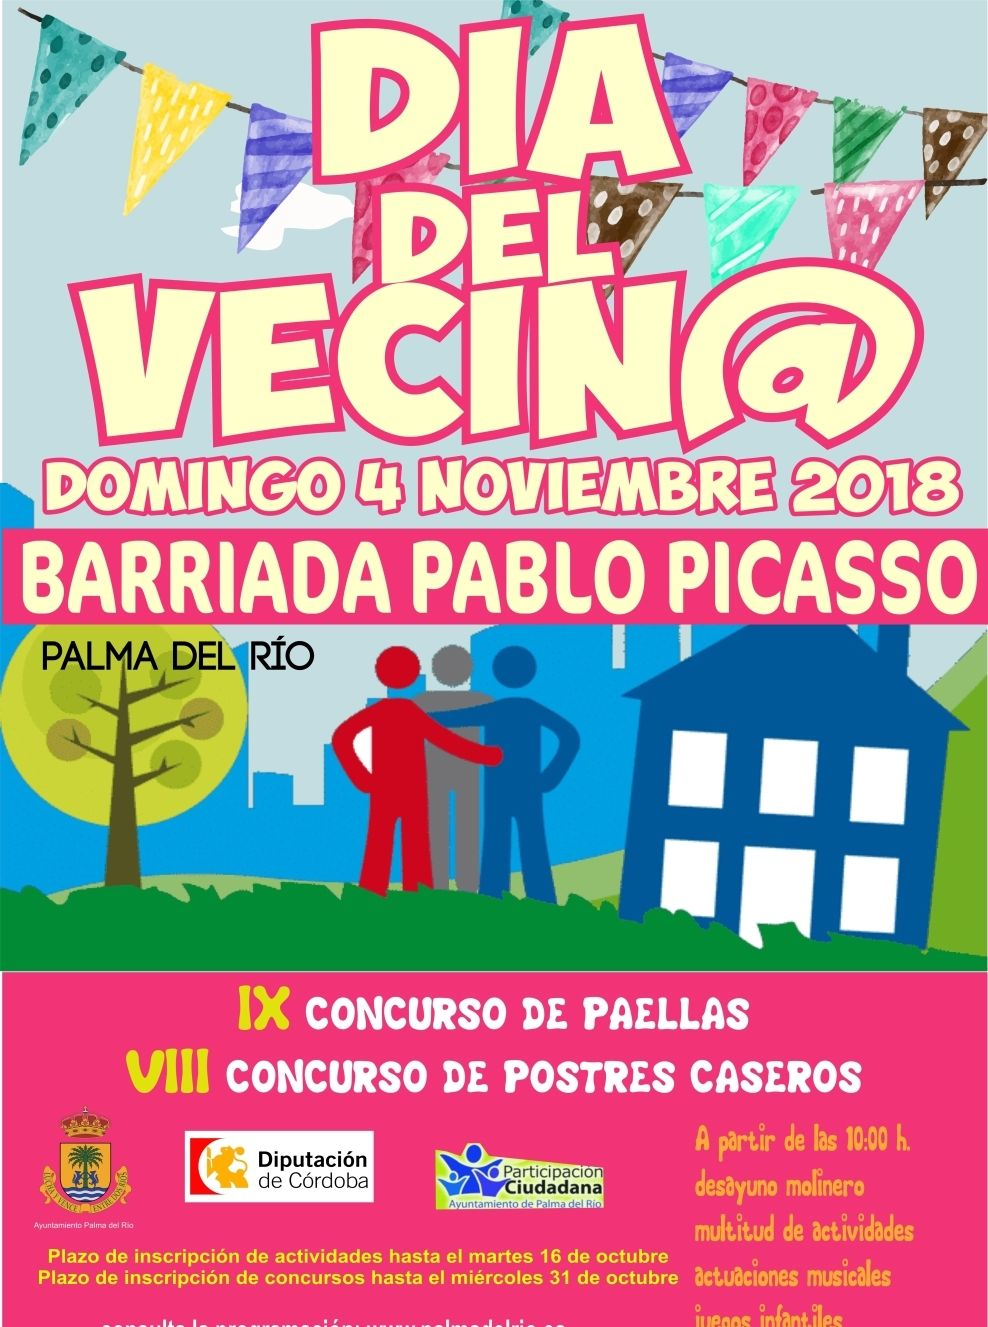 https://www.palmadelrio.es/sites/default/files/sin_programacioncartel_dia_del_vecino_2018.jpg